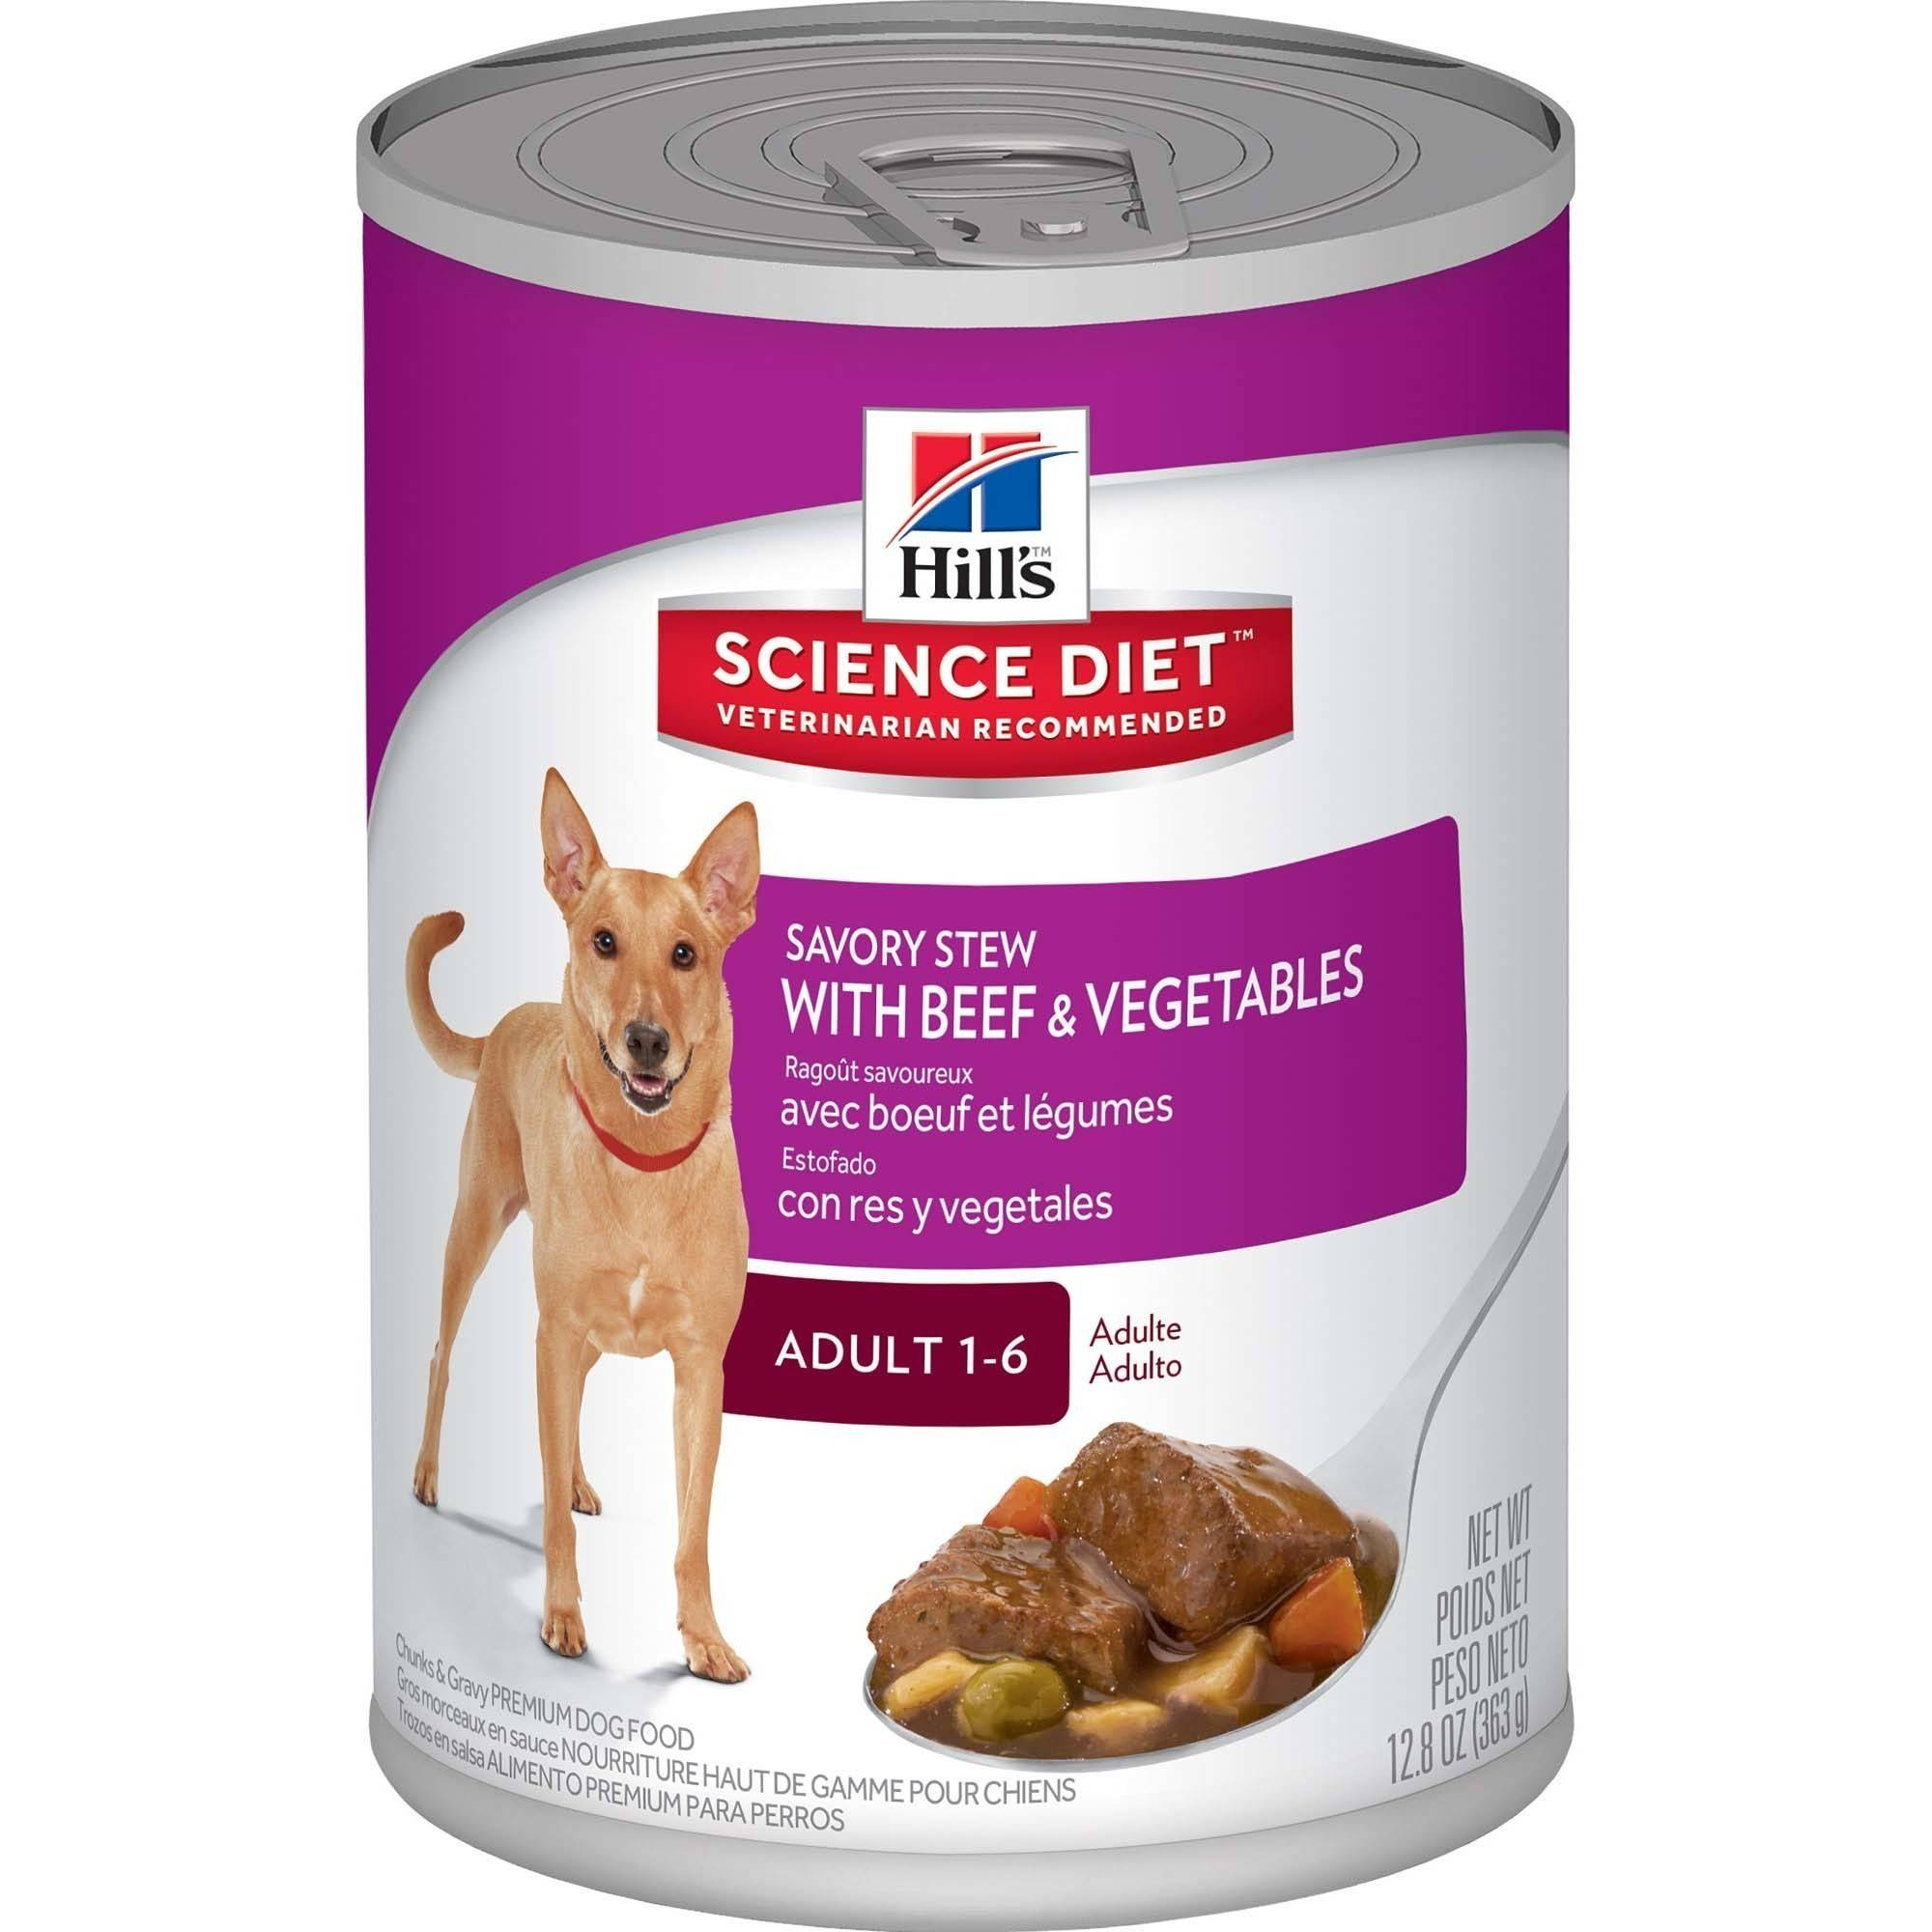 Hill's Science Diet Adult Savory Stew with Beef & Vegetables Canned Dog Food, 12.8 oz, 12-pack